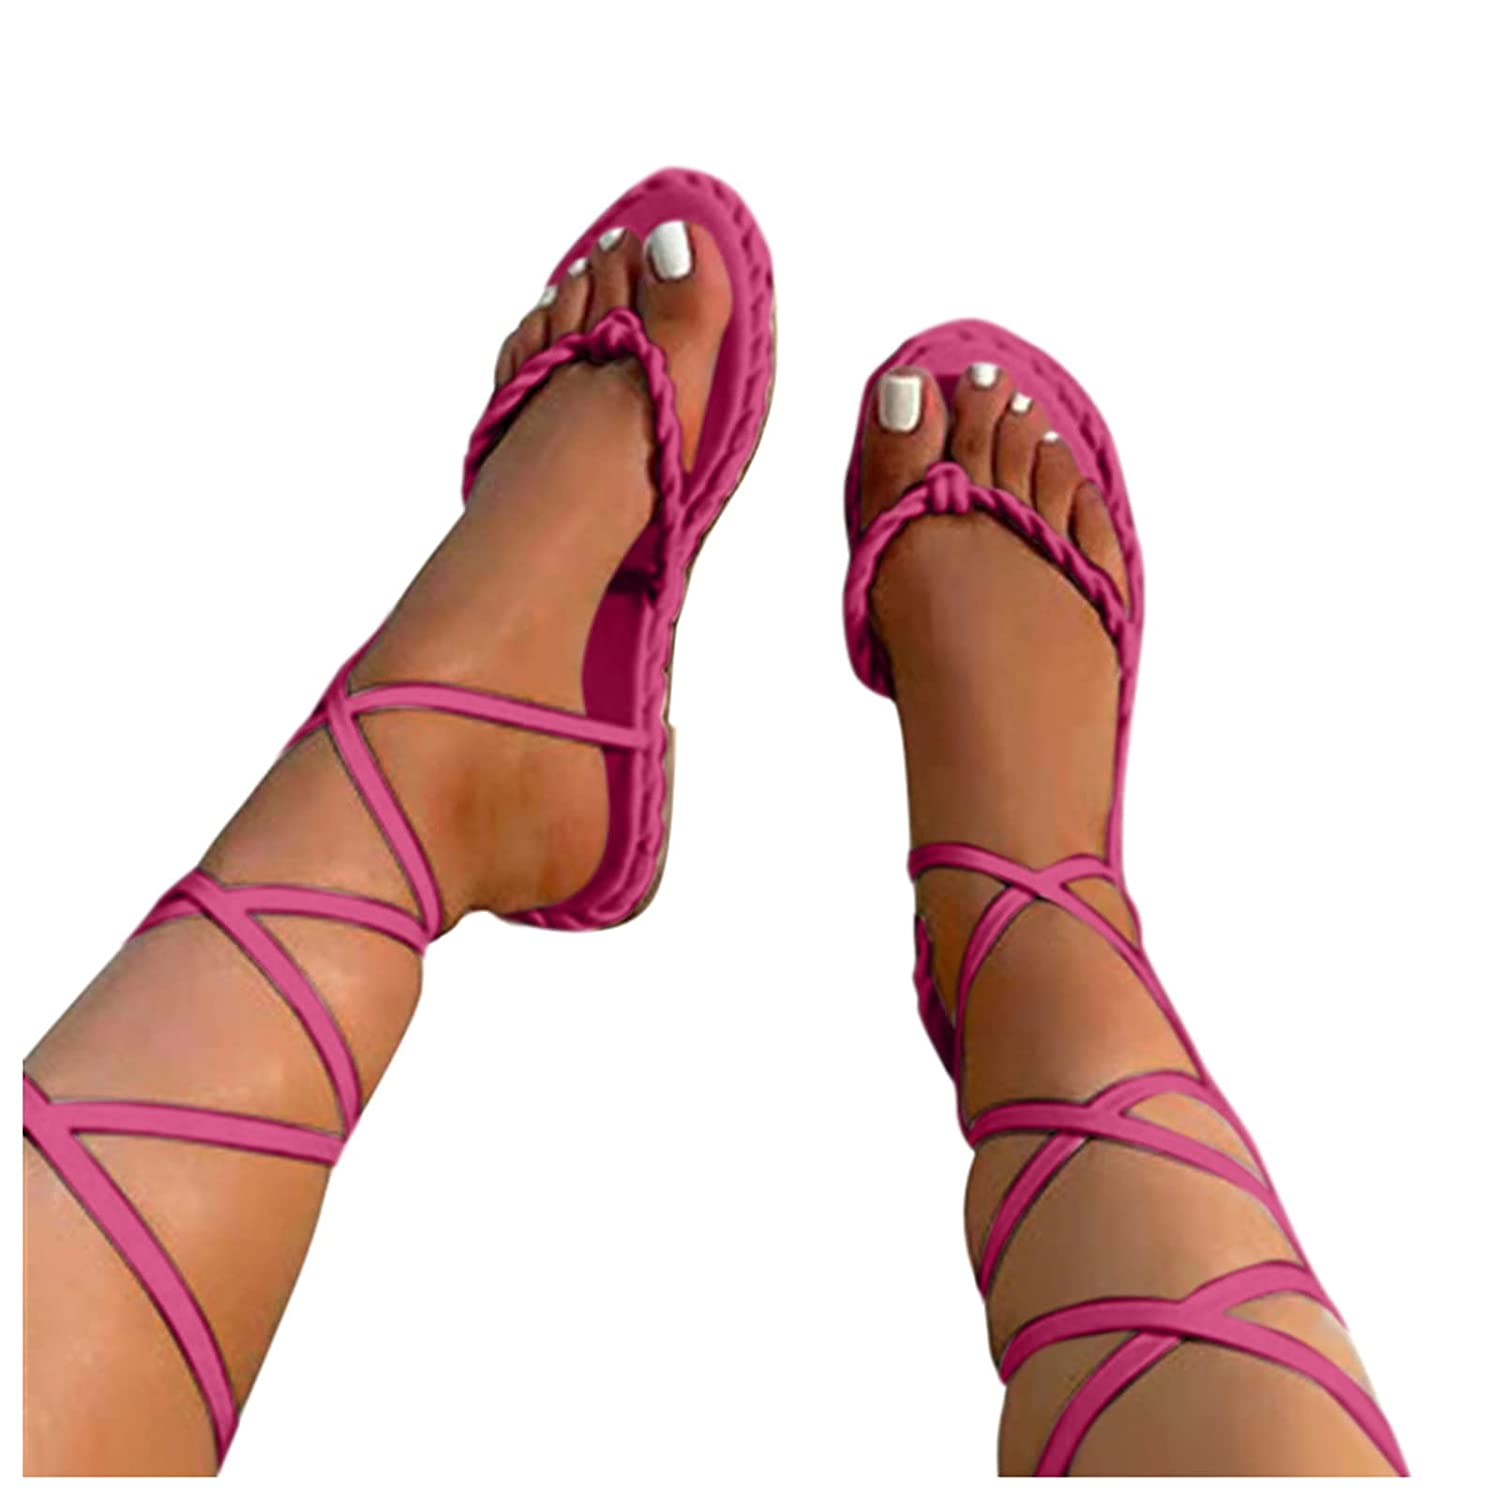 Padaleks Women's Flat Flip Max 60% OFF Flops Strappy Comfort S Sandals New product! New type Thong